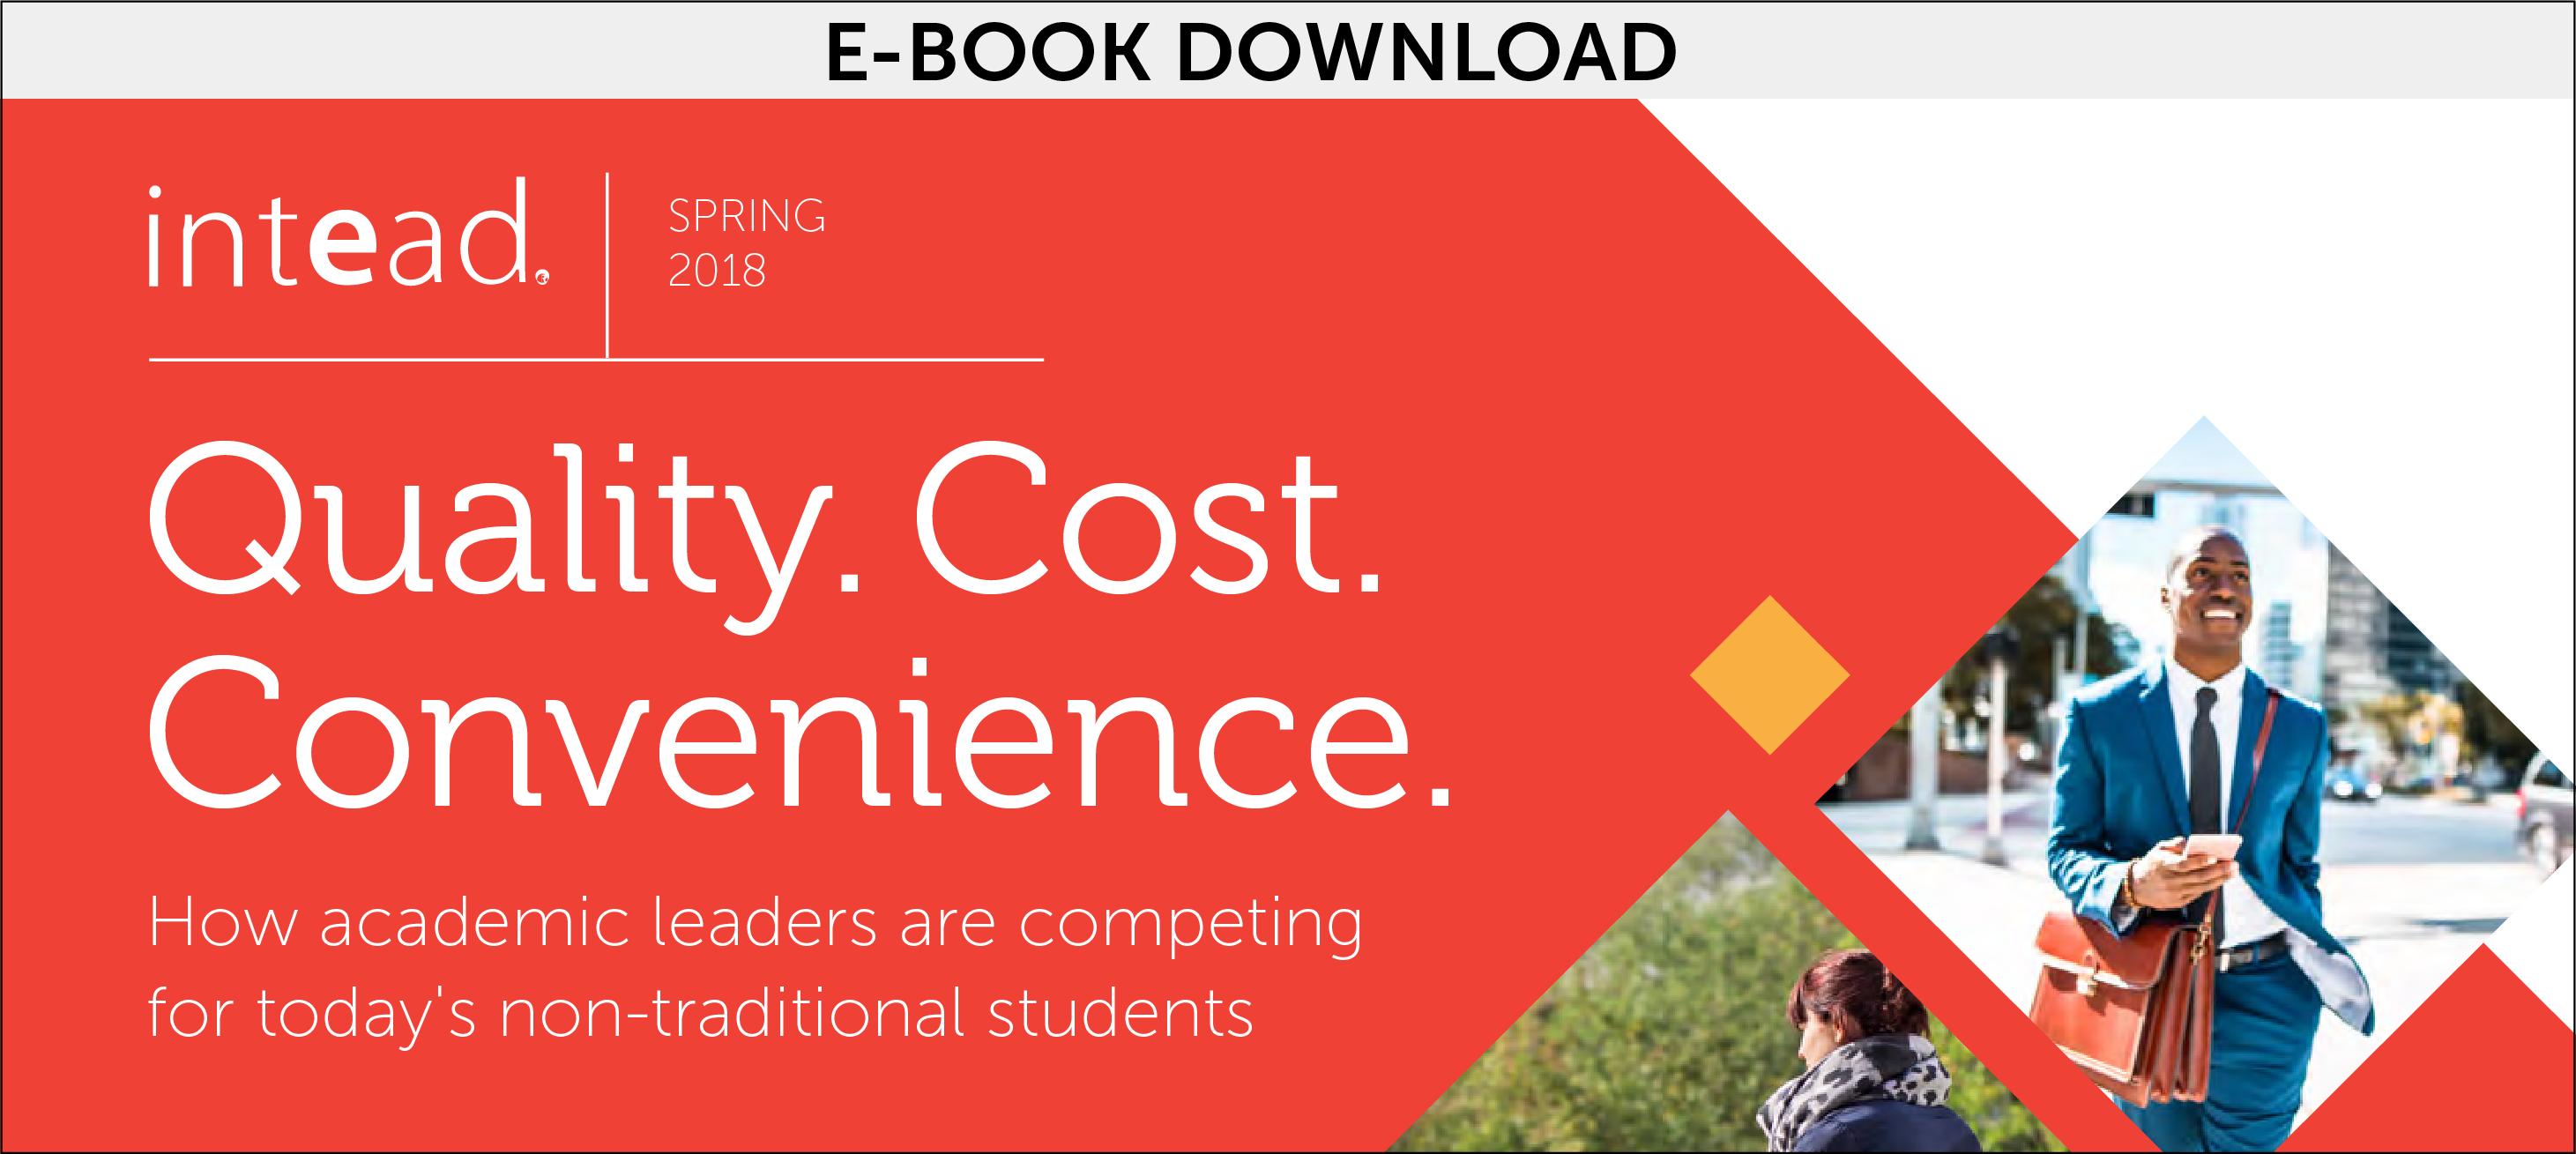 Quality. Cost. Convenience. - eBook